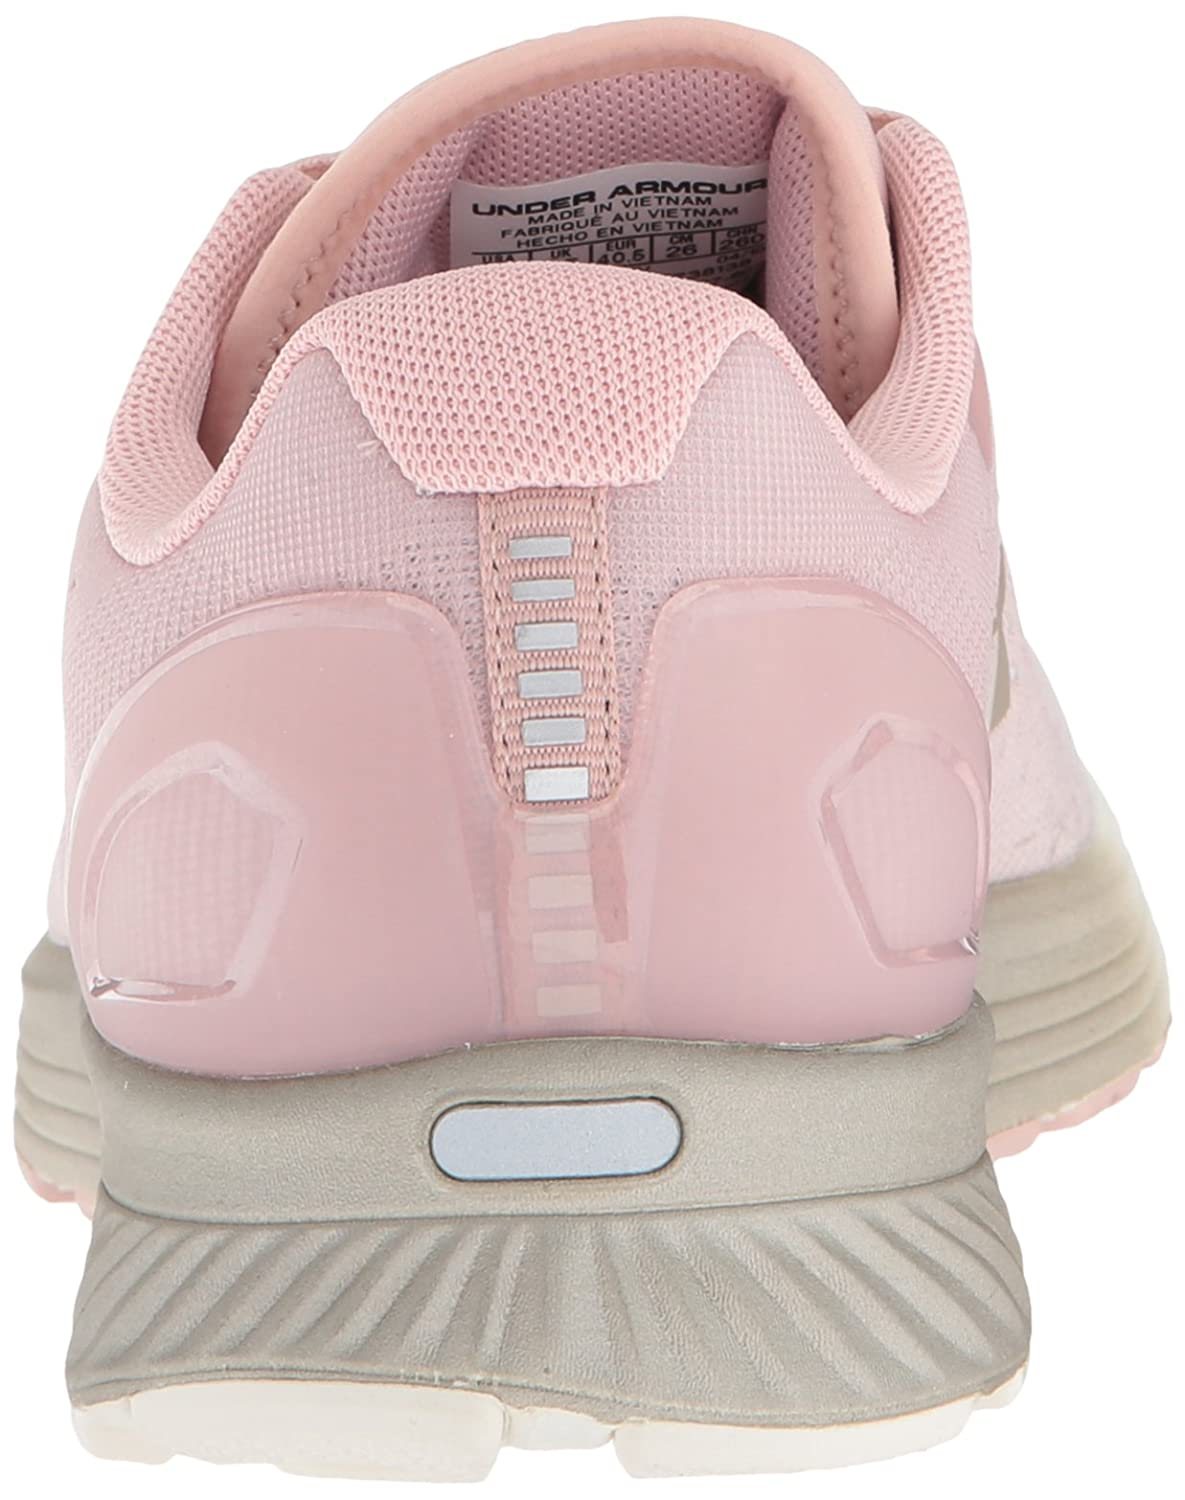 Under Armour Running Women's Charged Bandit 4 Running Armour Shoe B076RT244D 6.5 M US|Flushed Pink (603)/Ivory 5102e5